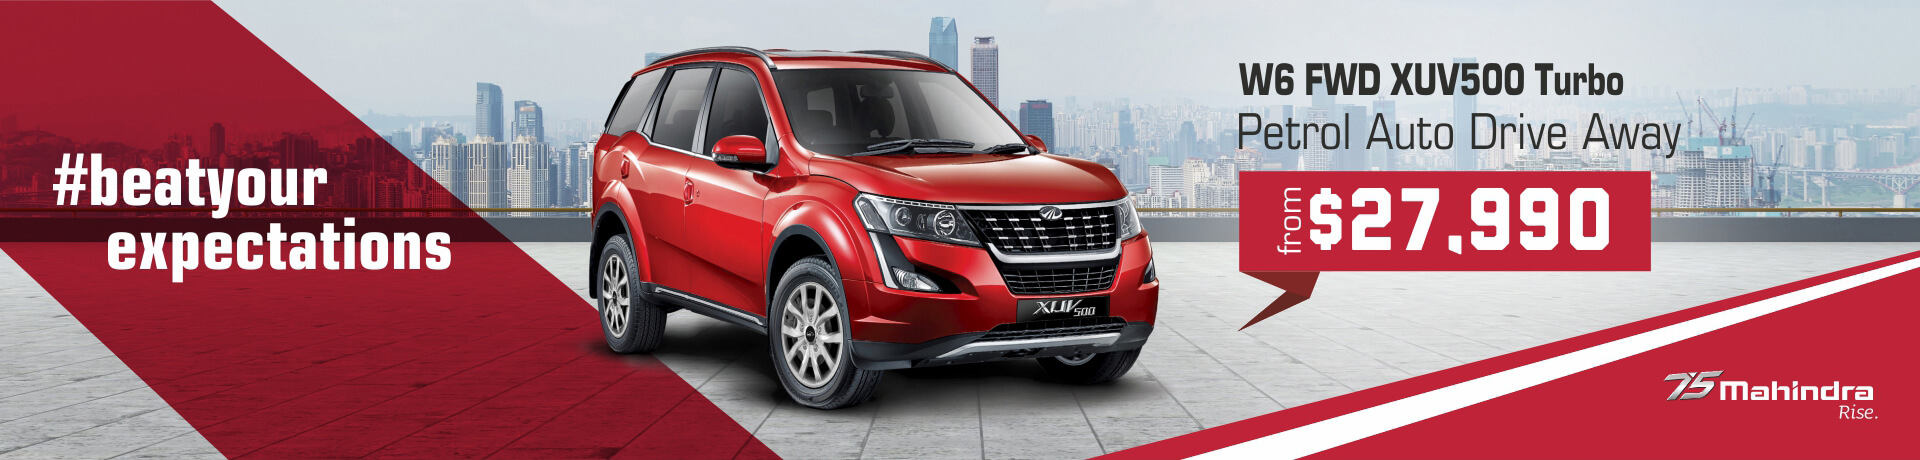 Beat your expectations with the Mahindra w6 FWD XUV500 Turbo